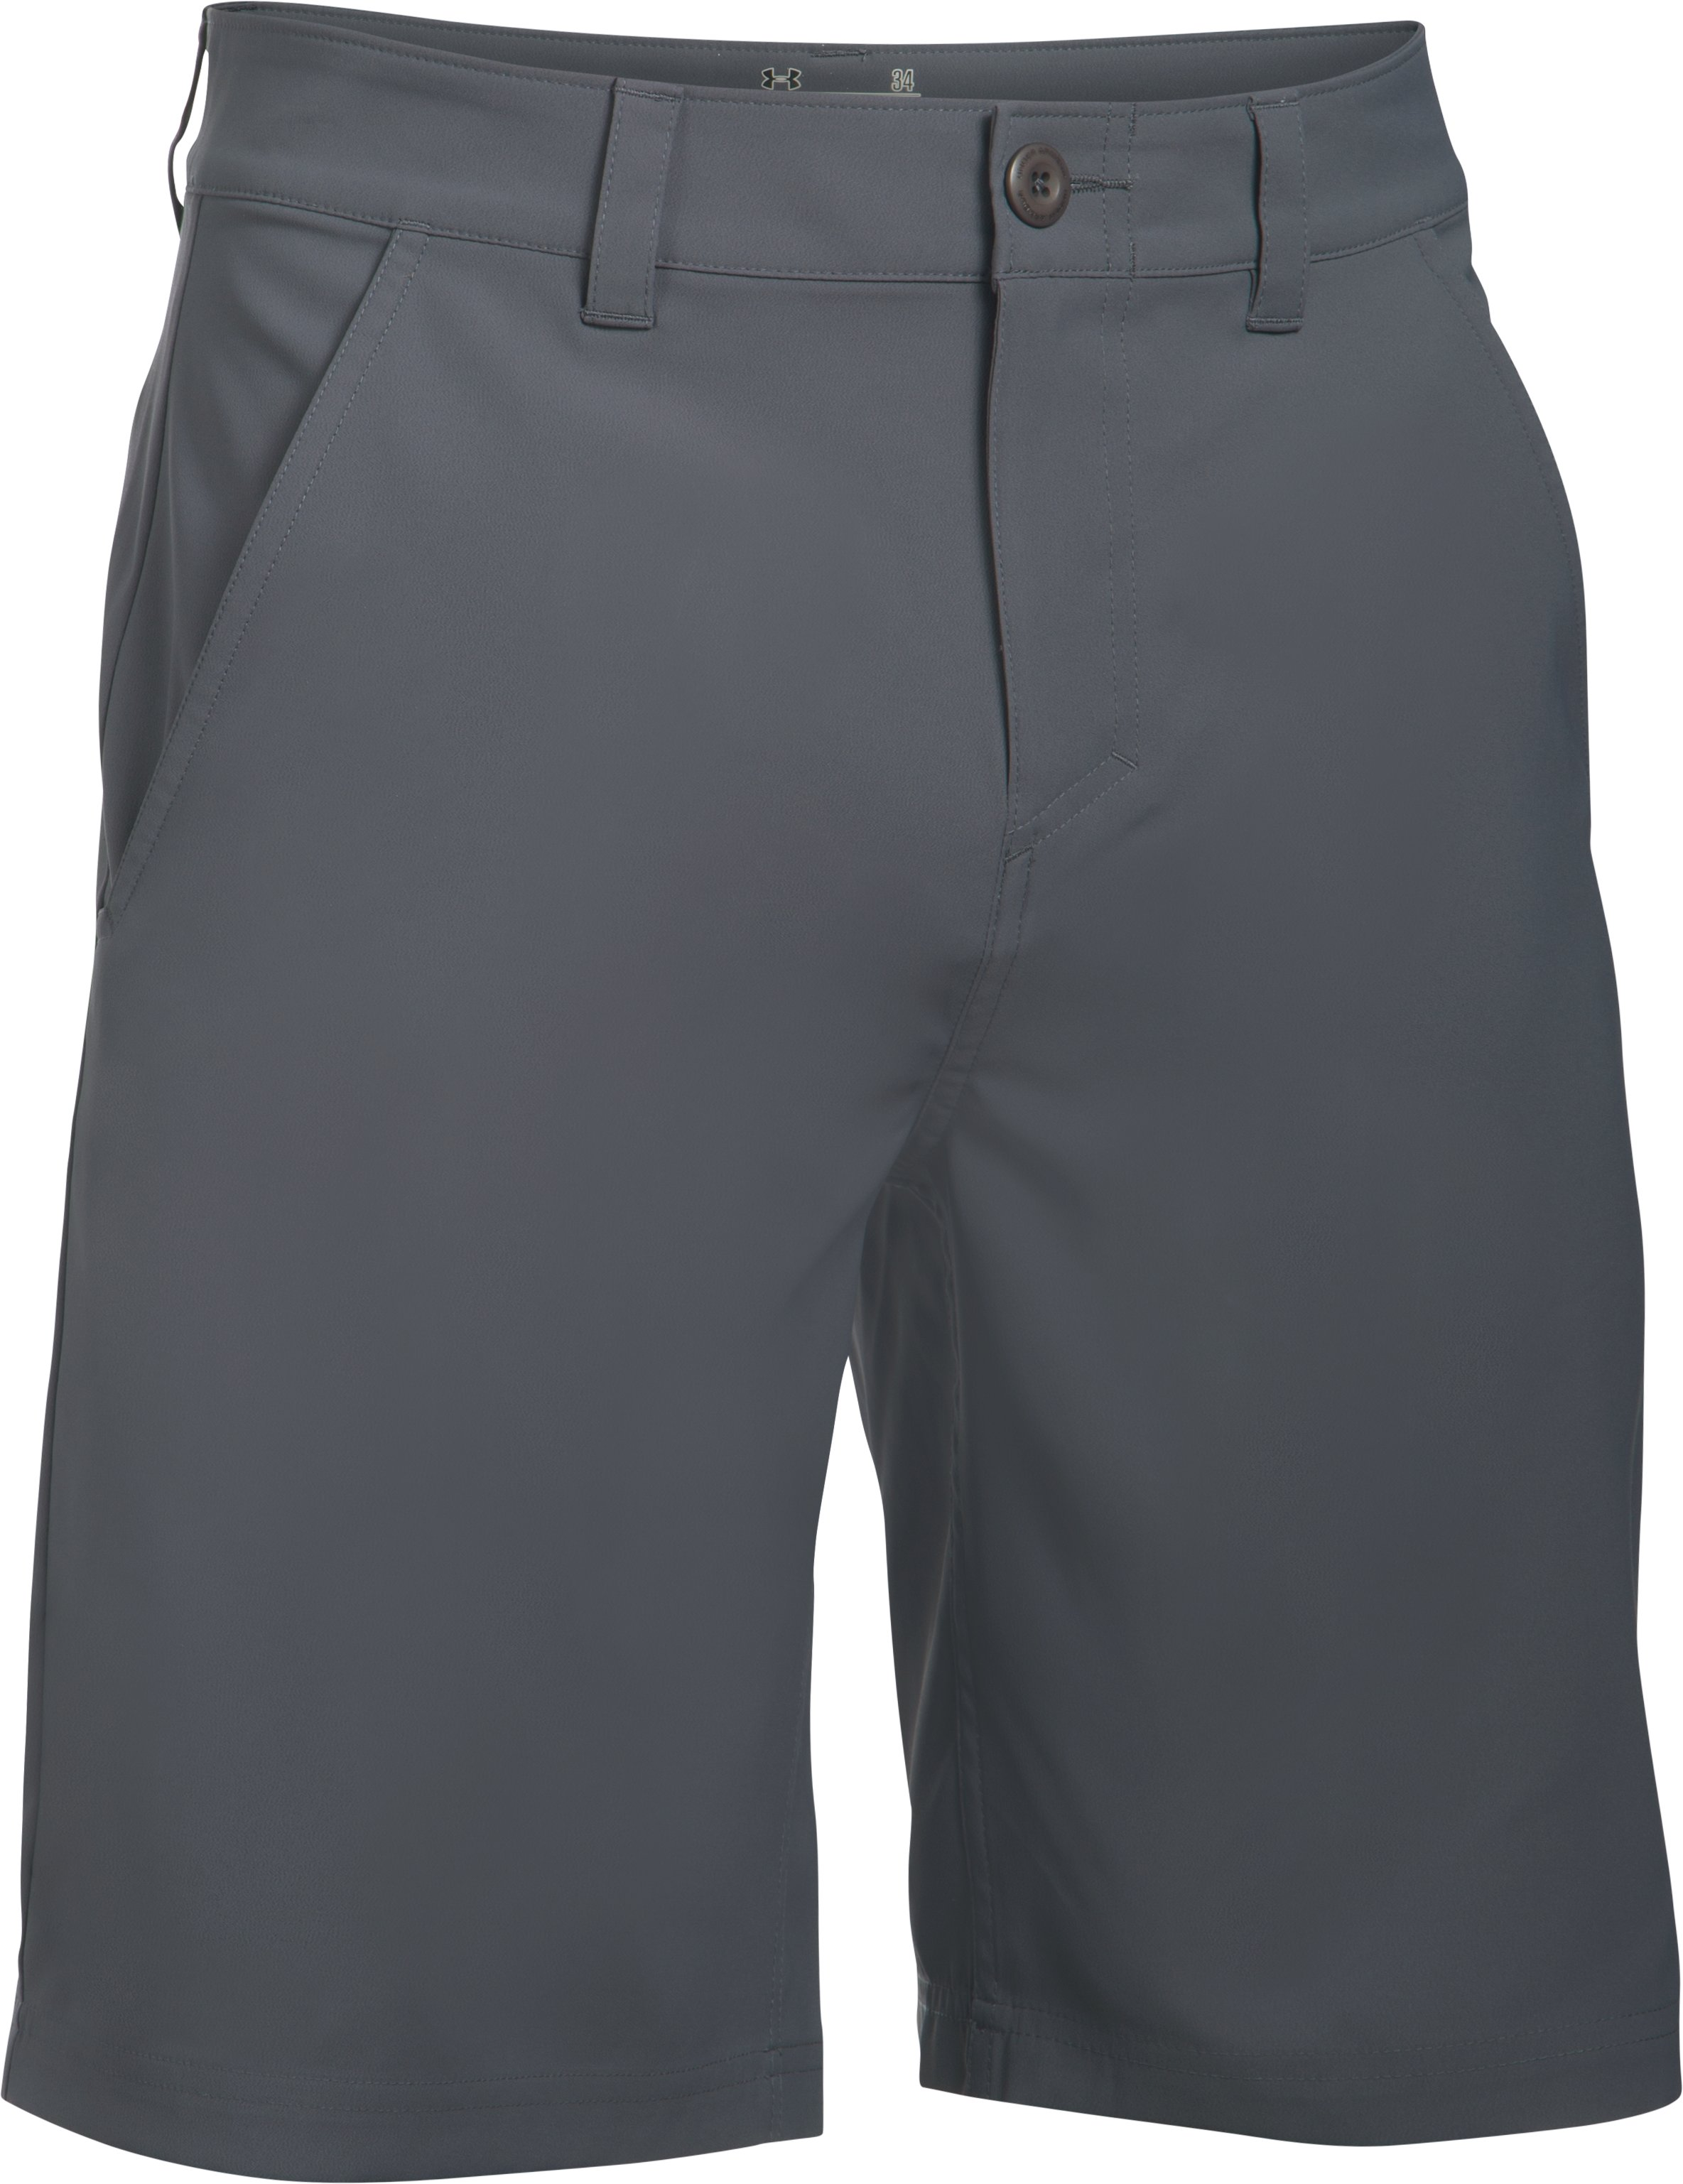 Men's UA Fish Hunter Shorts, RHINO GRAY, undefined